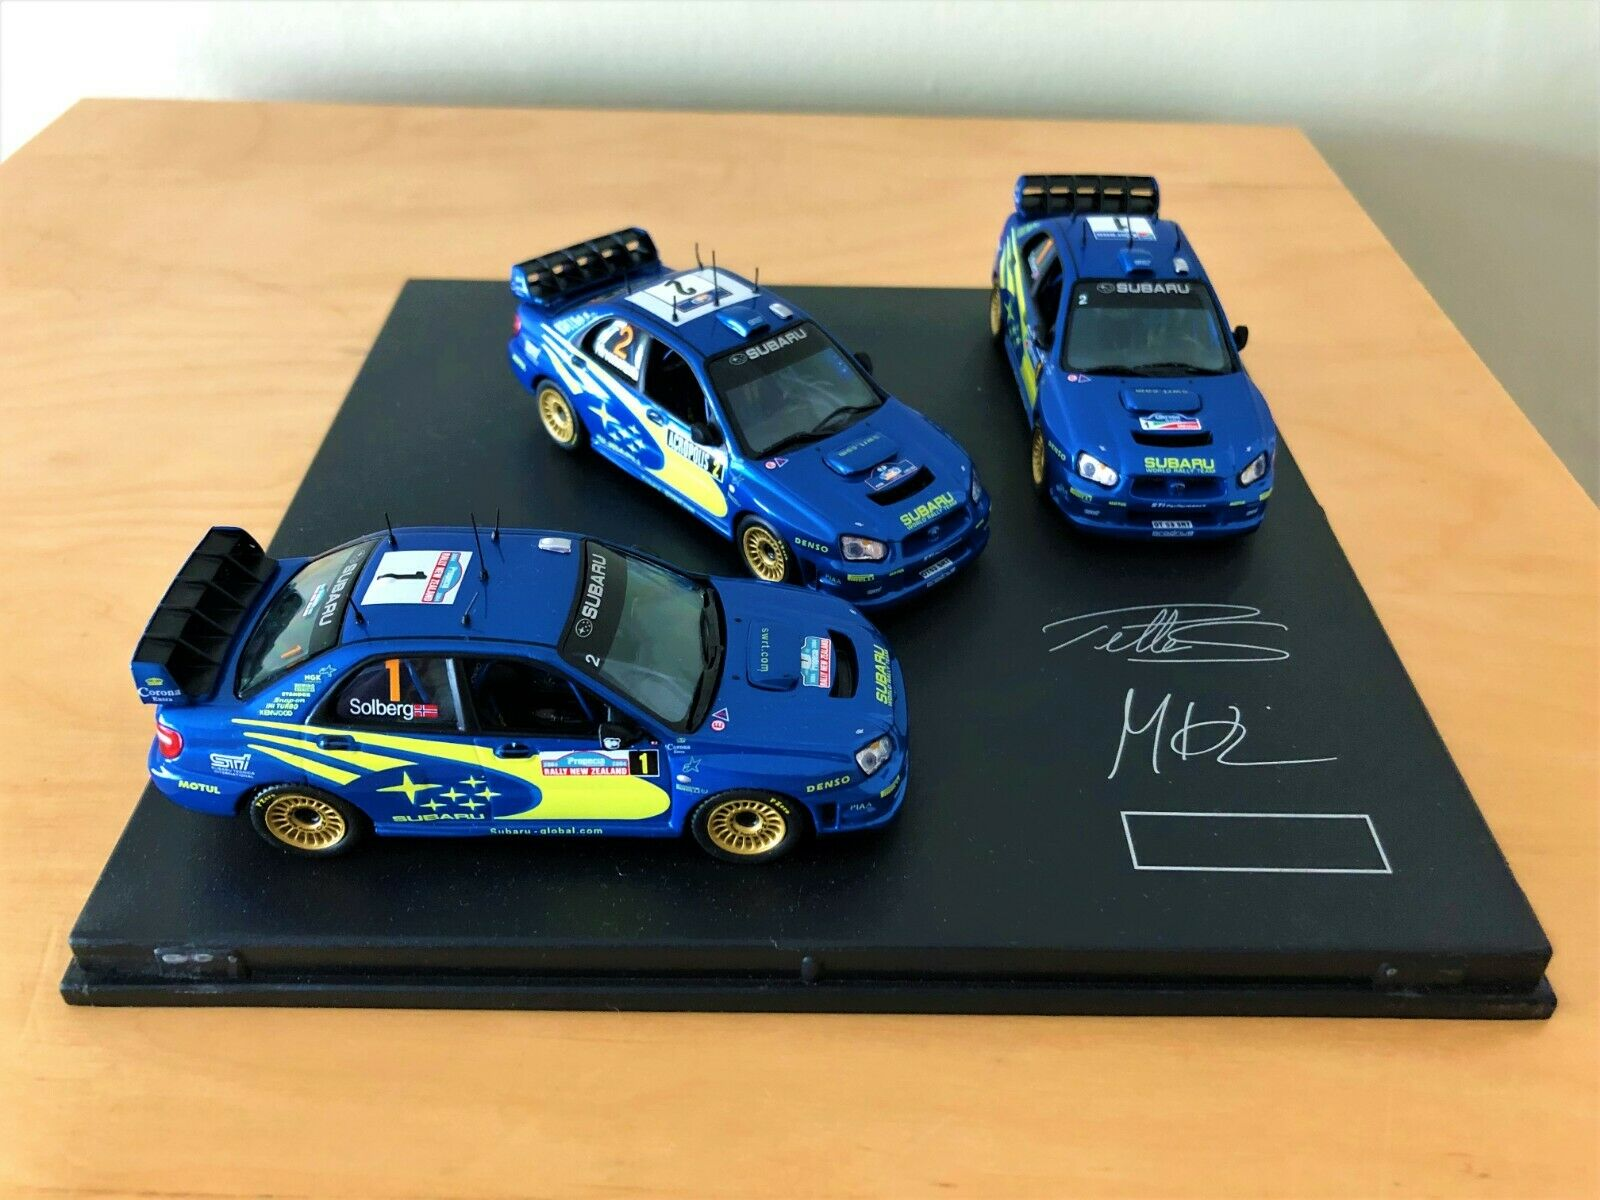 Collectable & Rare Diecast Subaru Impreza WRC 2003 Set of 3 Solberg & Hirvonen